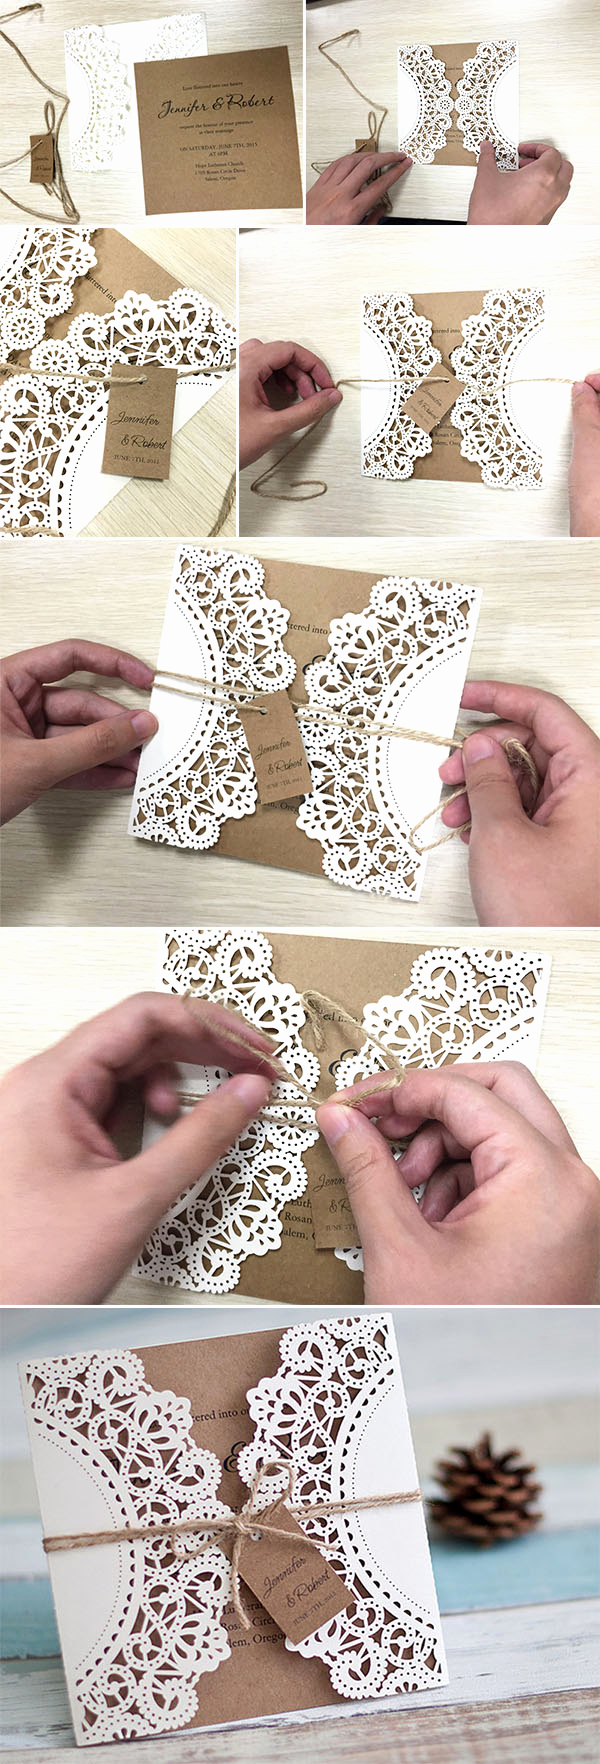 Diy Wedding Invitation Idea Unique Diy Wedding Ideas 10 Perfect Ways to Use Paper for Weddings